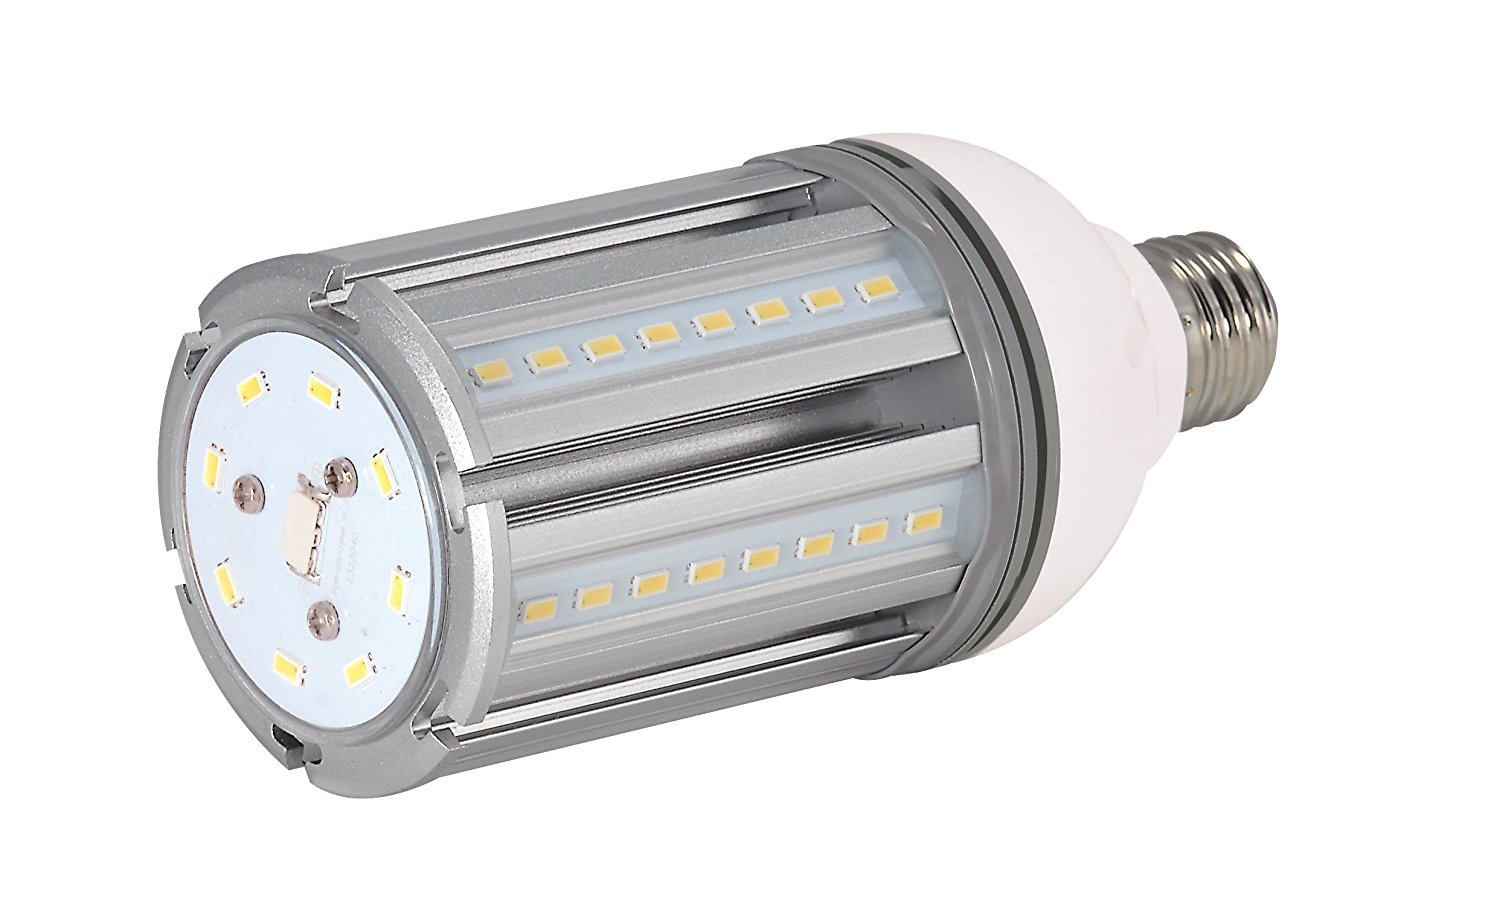 Satco S9390 5000K Medium Base 100-277V 18W LED HID Replacement